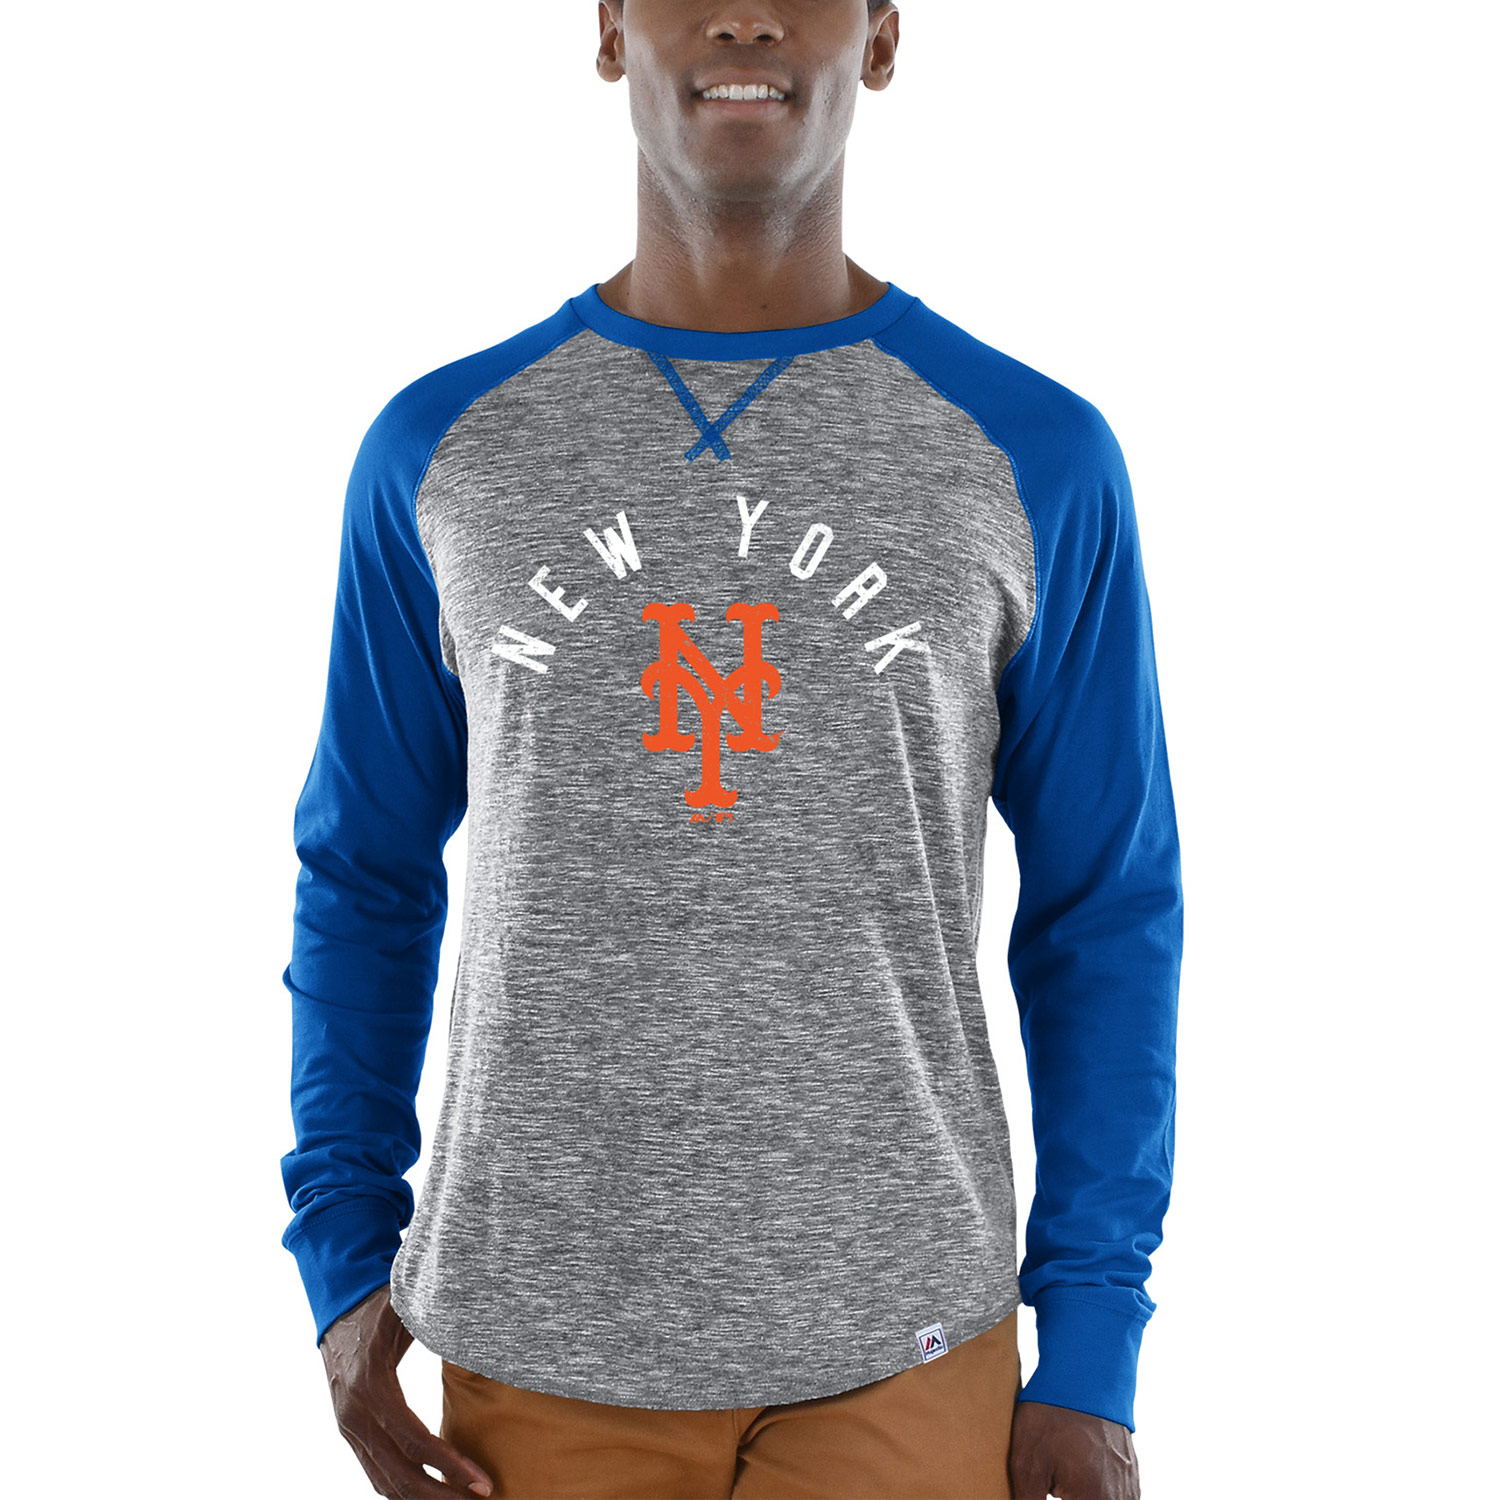 New York Mets Majestic Special Move Long Sleeve T-Shirt - Gray/Royal